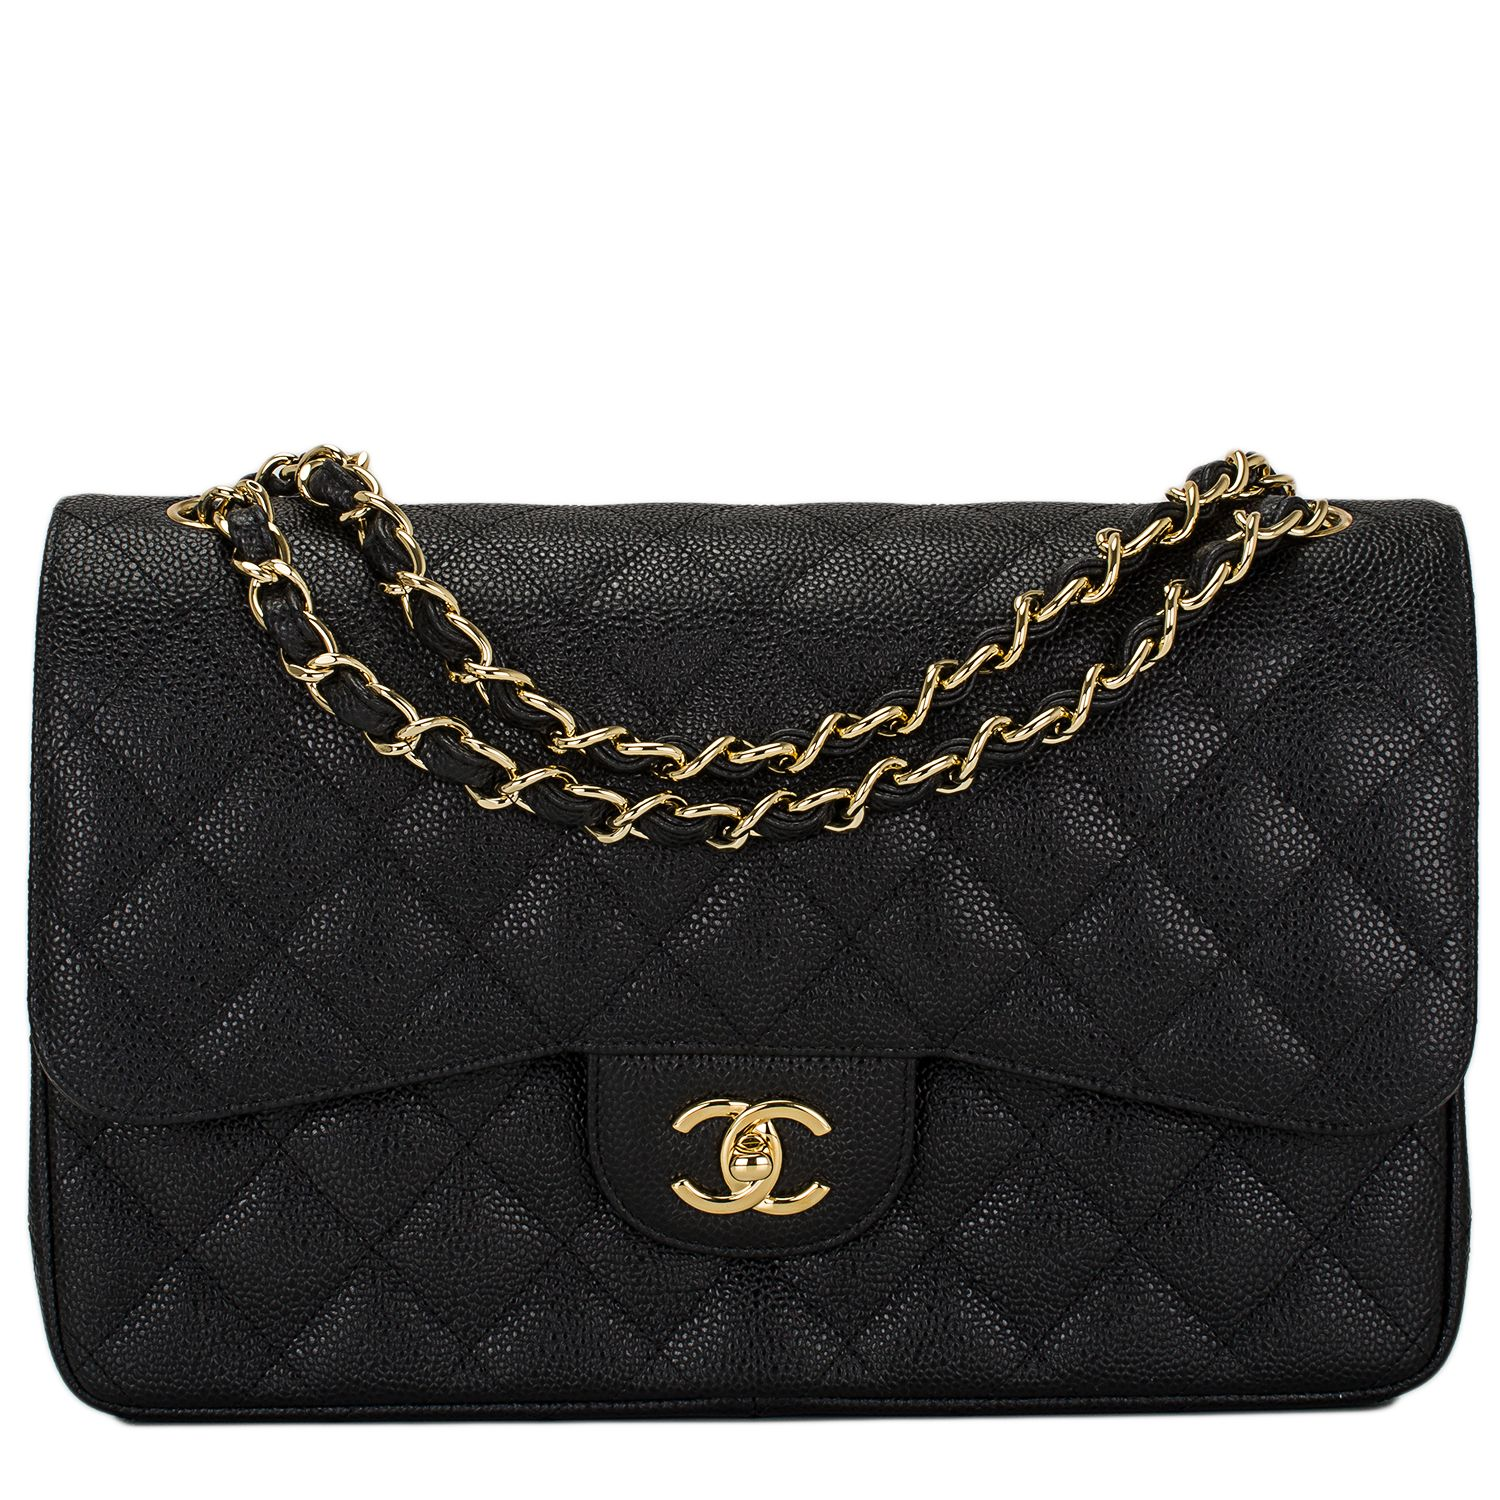 9bf220bd6734 Chanel Black Quilted Caviar Jumbo Classic Double Flap Bag Gold Hardware # chanel